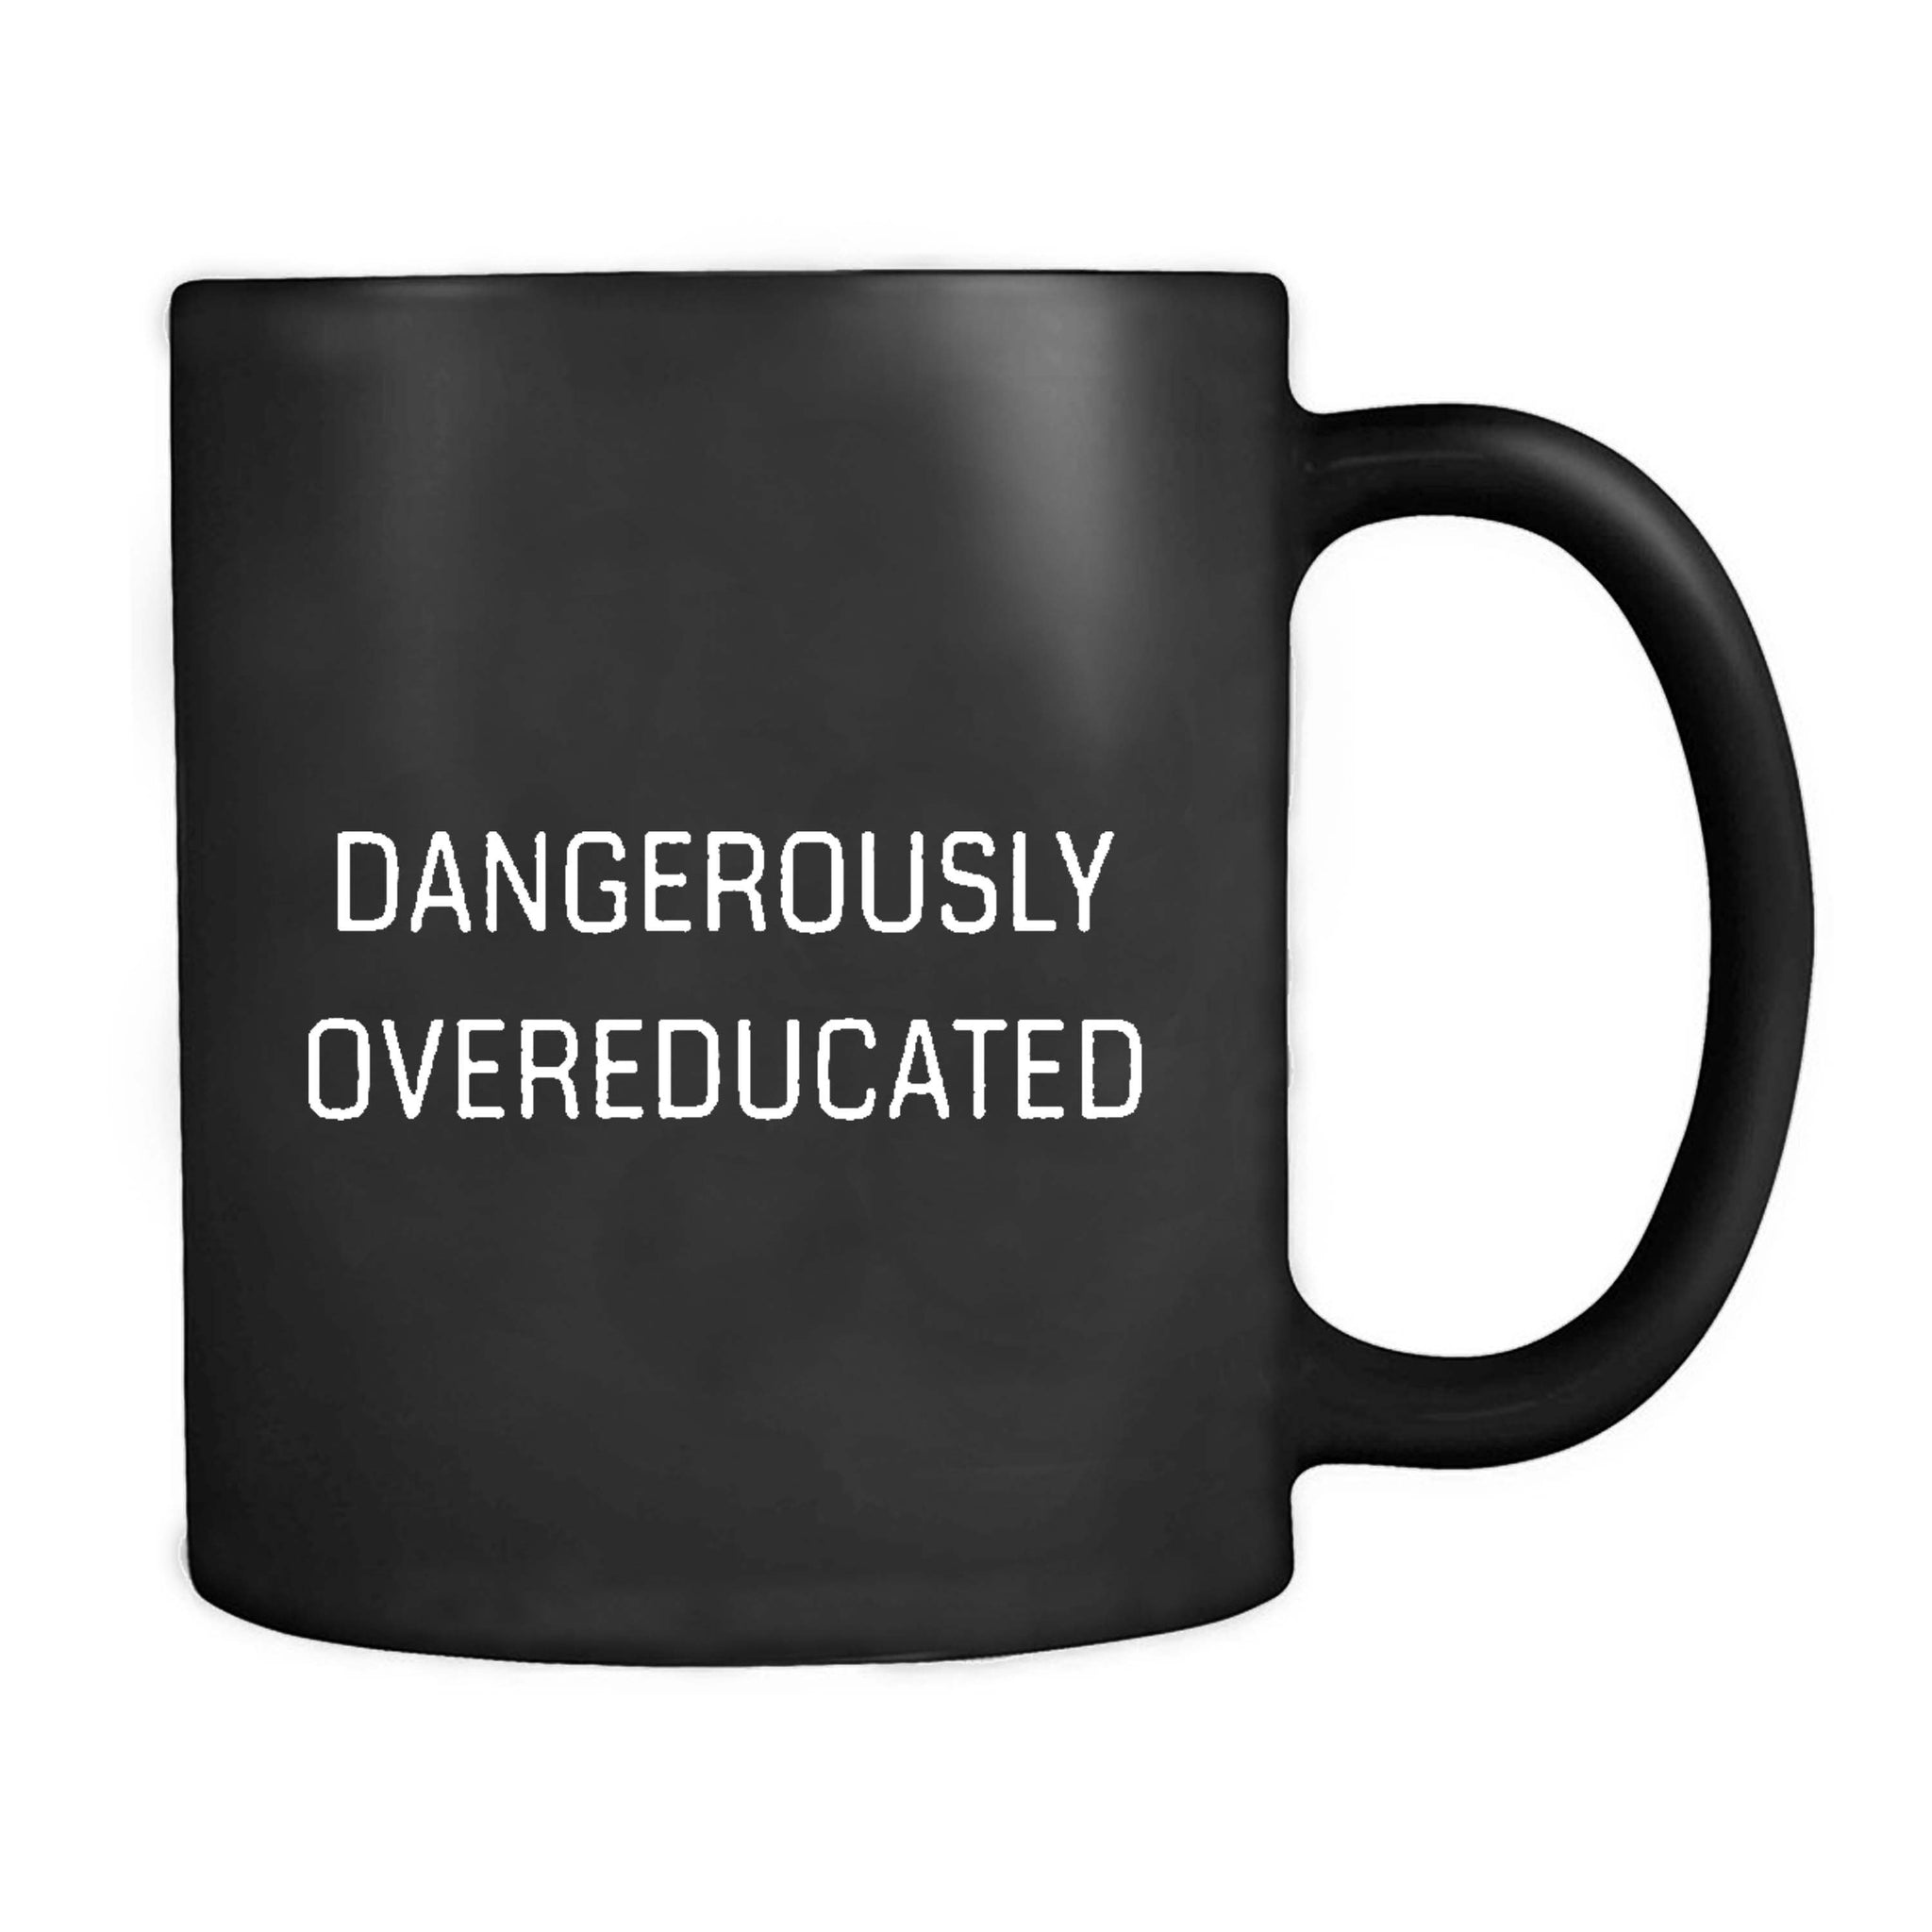 Graduate Student Gifts Dangerously Overeducated Mug